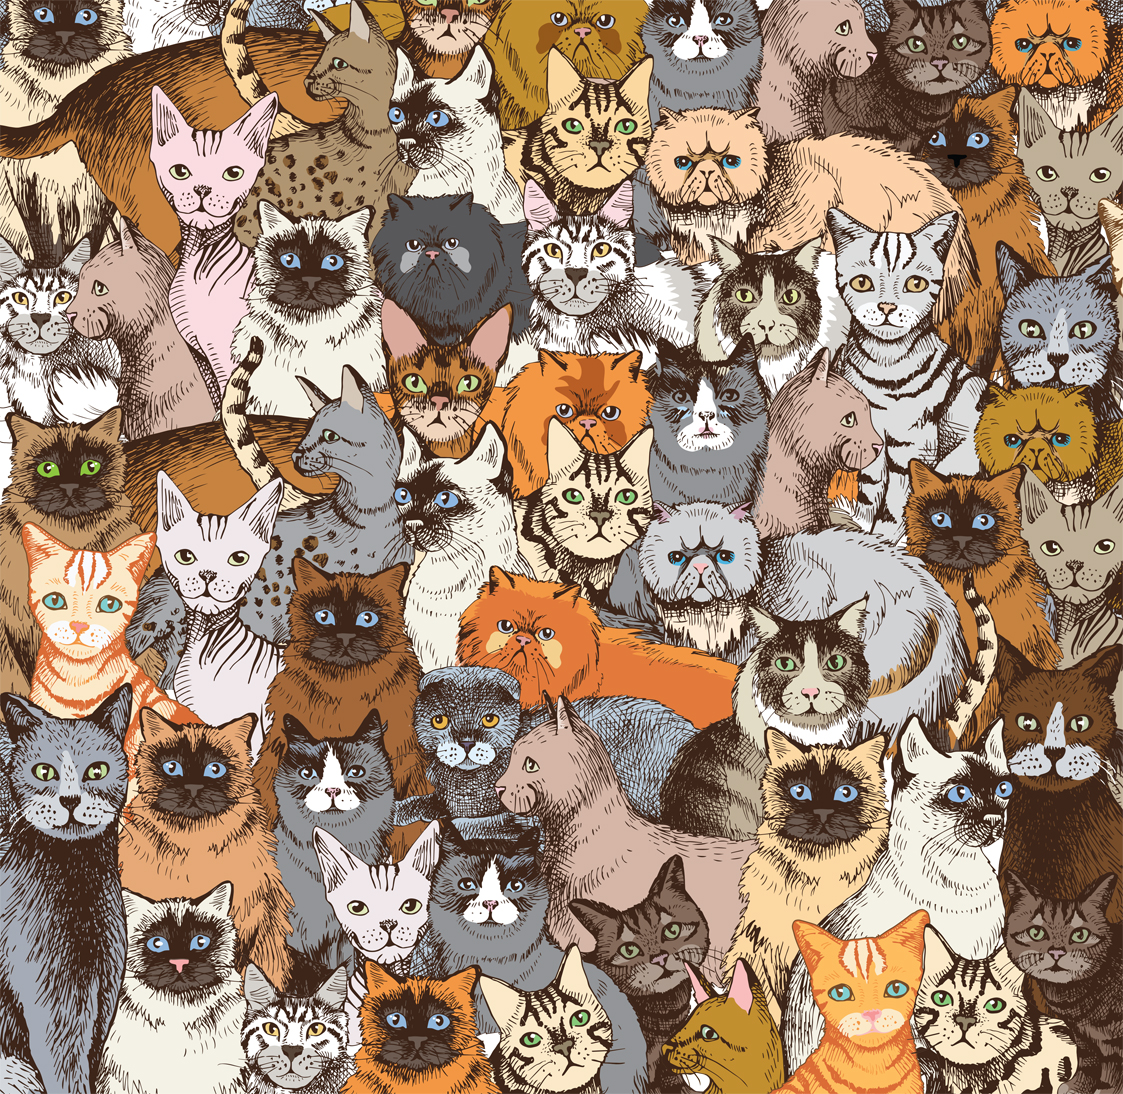 Cat-jigsaw-puzzle-world's-most-difficult-double-sided-puzzle